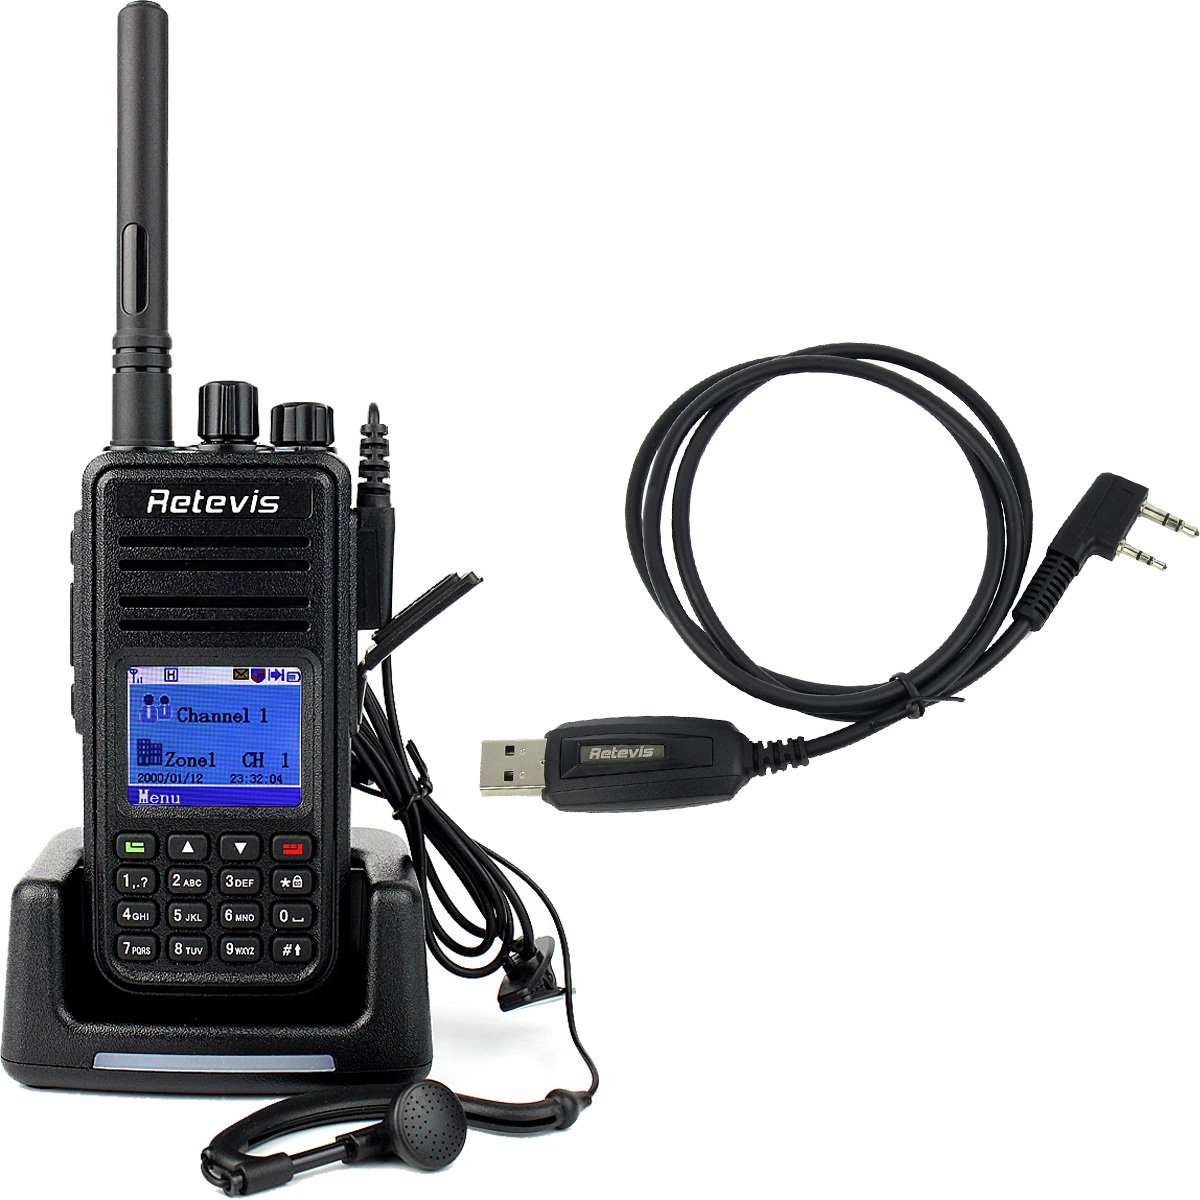 Retevis RT3 DMR UHF Digital Two Way Radio 5W 1000CH 400-480MHz VOX Message Scrambler Ham Amateur Radio(1 Pack) with Programming Cable